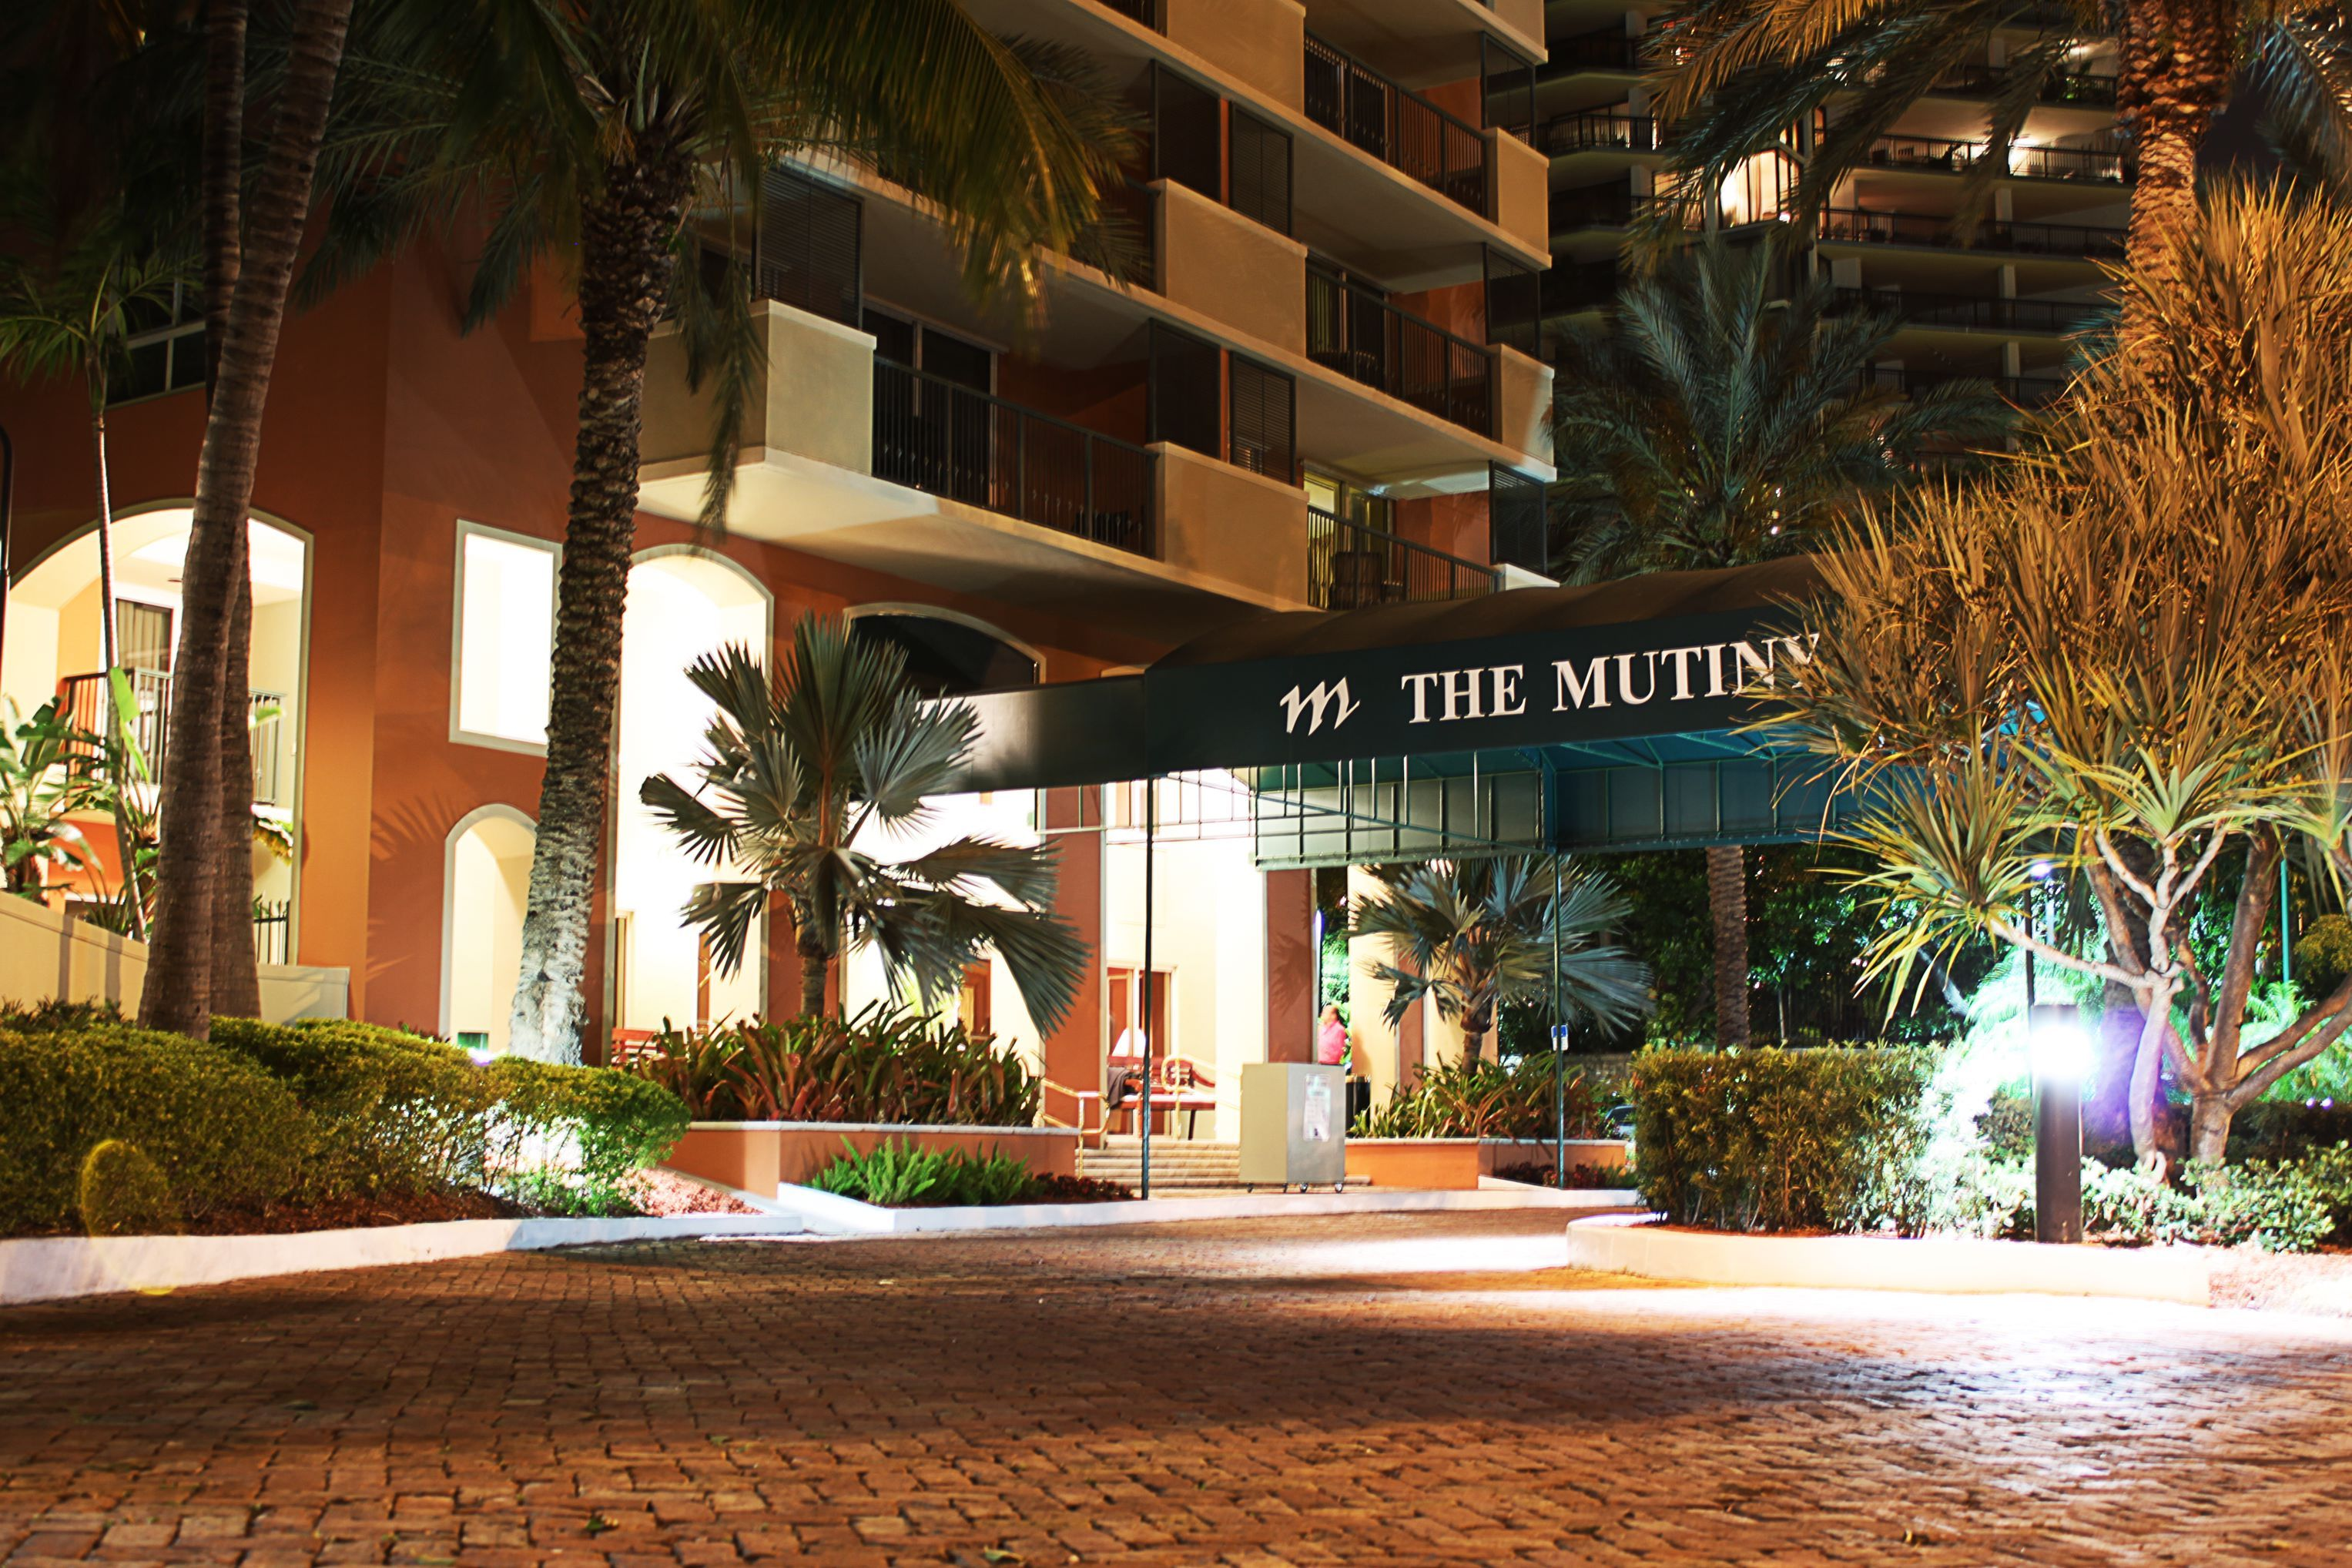 description henry unlike architecture miami best architect in virginia blog brief ocean gardens hotel of facades hohauser deco duran cheap garden art name the by location hotels crescent drive most year